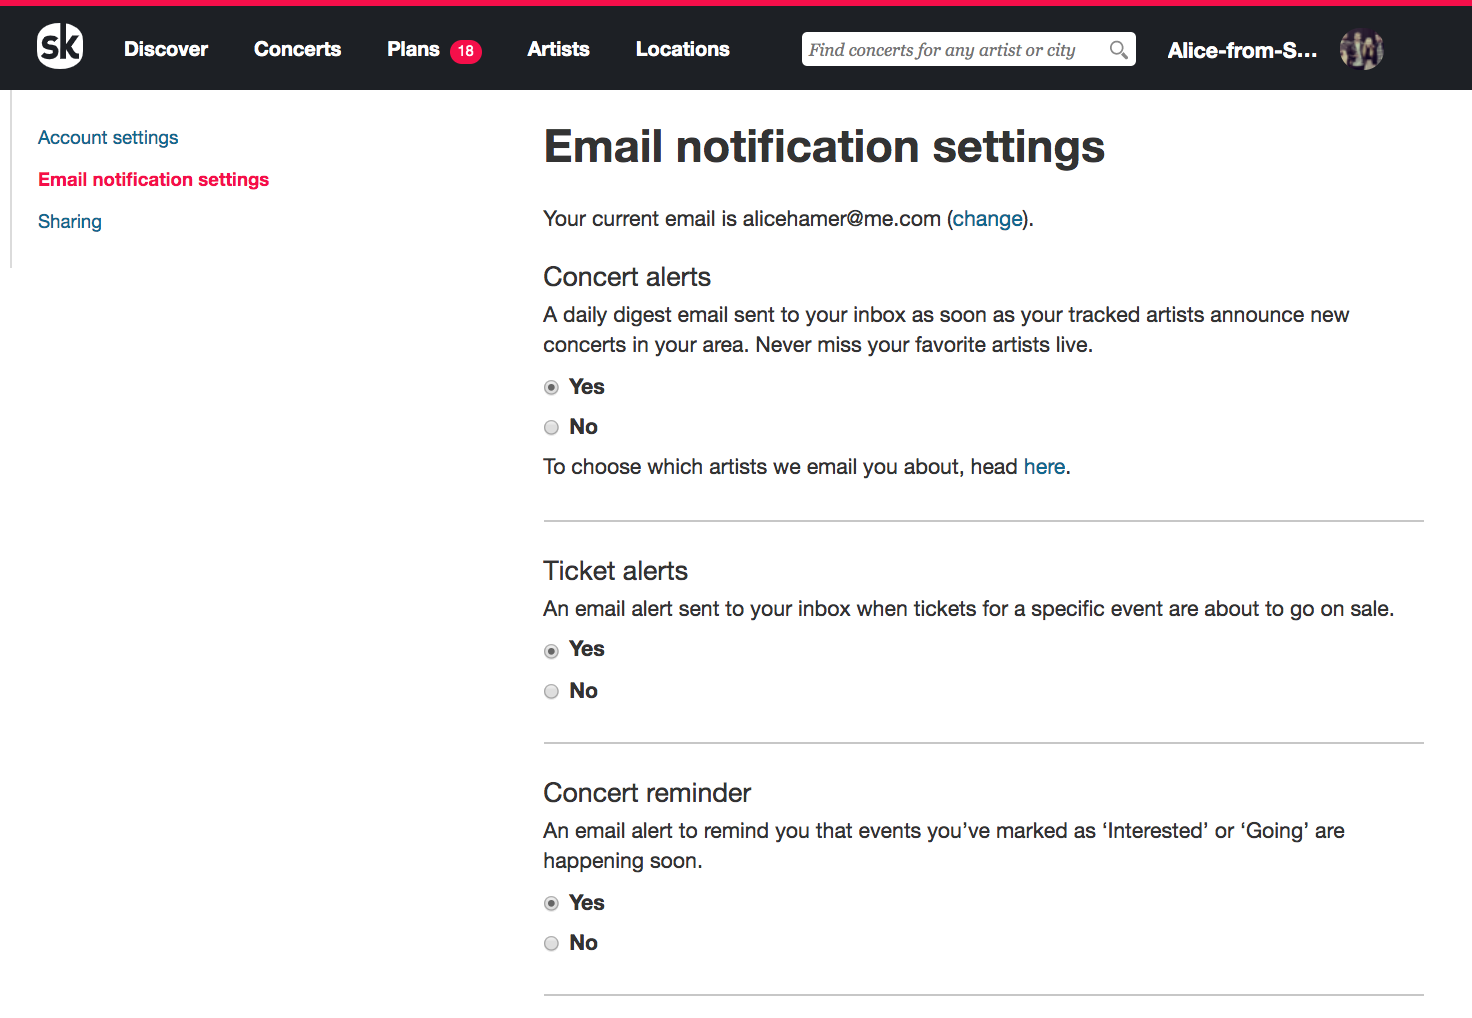 Songkick___Email_Notification_Settings.png